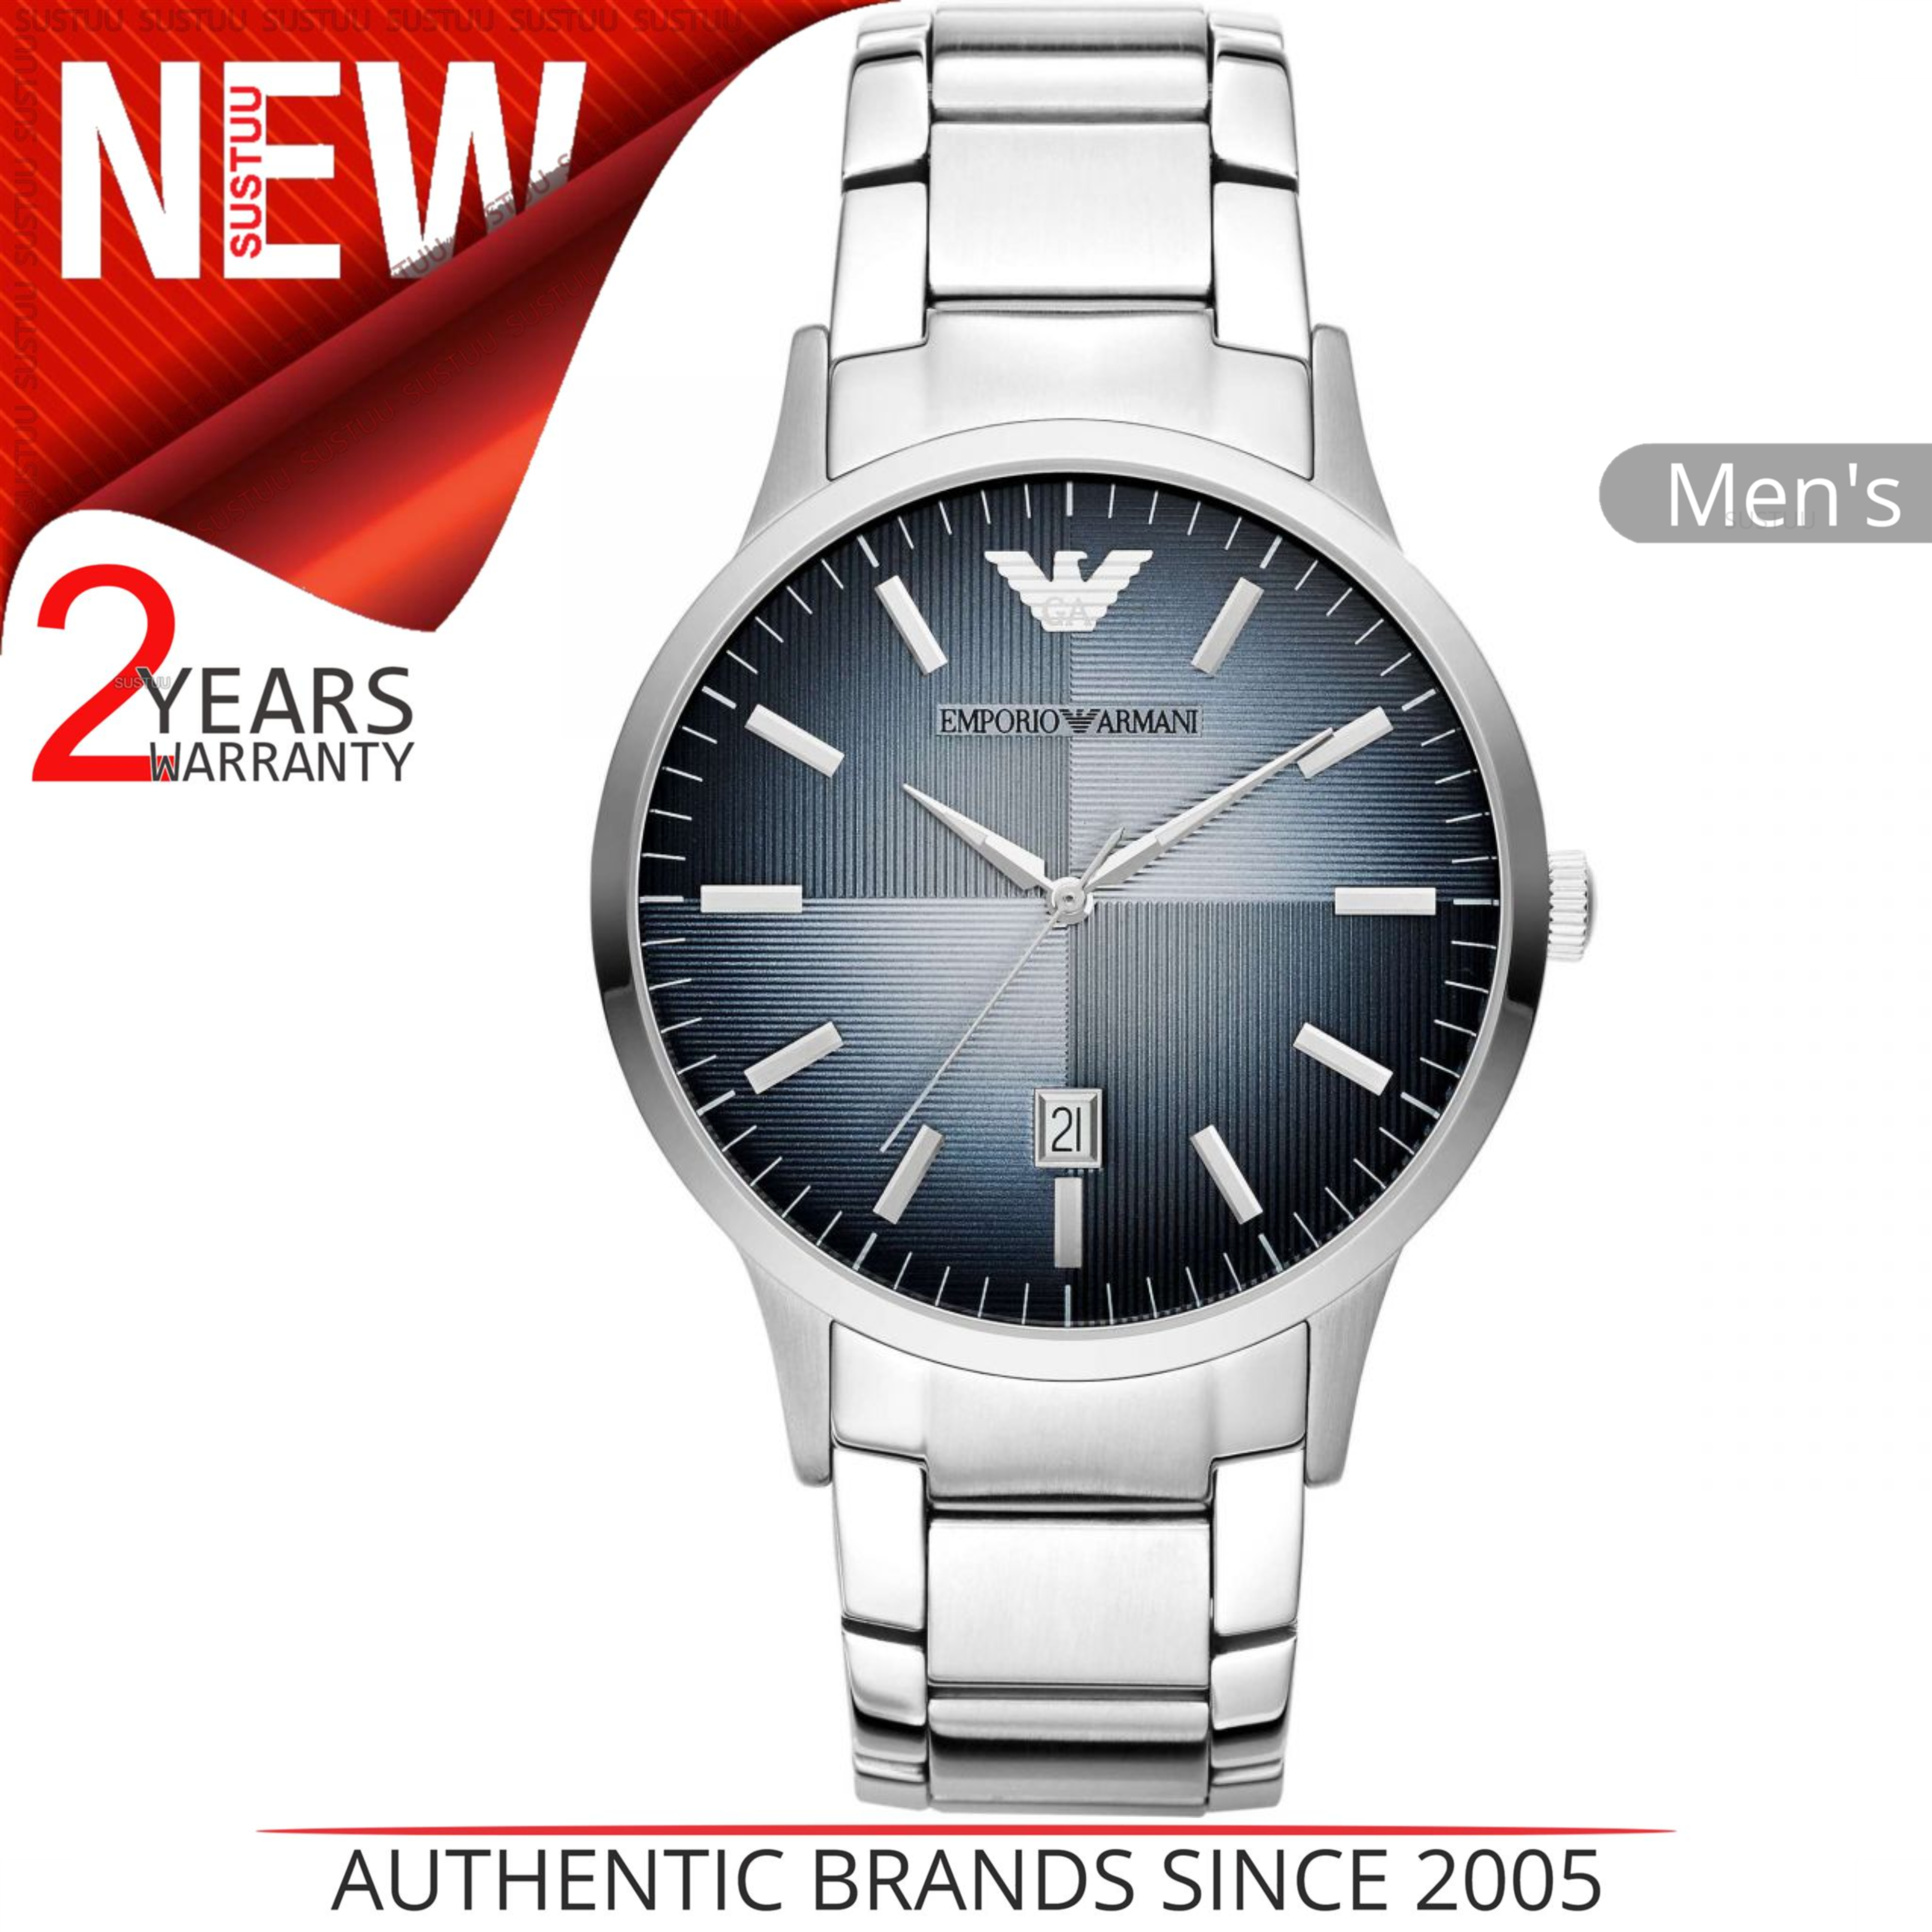 Details about Emporio Armani Classic Men s Watch│Blue Analog Metal  Dial│Silver Bracelet│AR2472 bfc3e65a2a